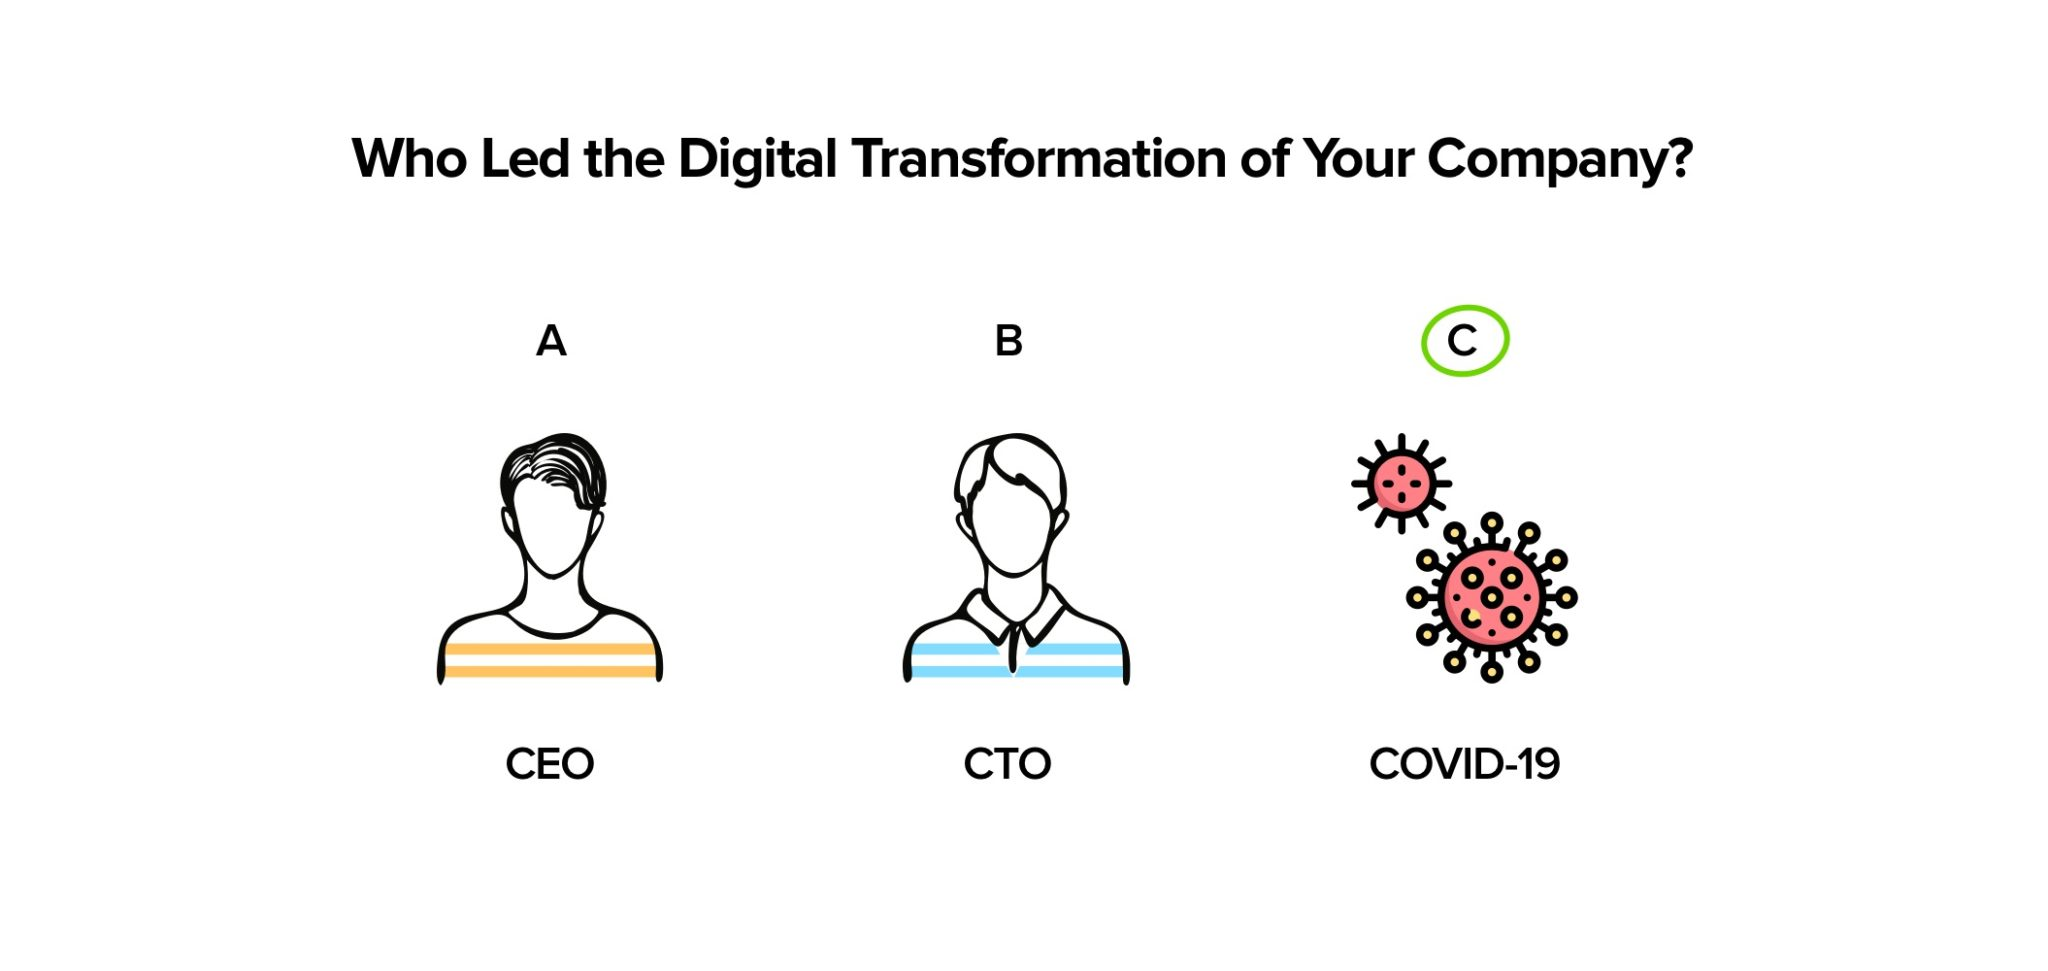 Who Led the Digital Transformation of Your Company